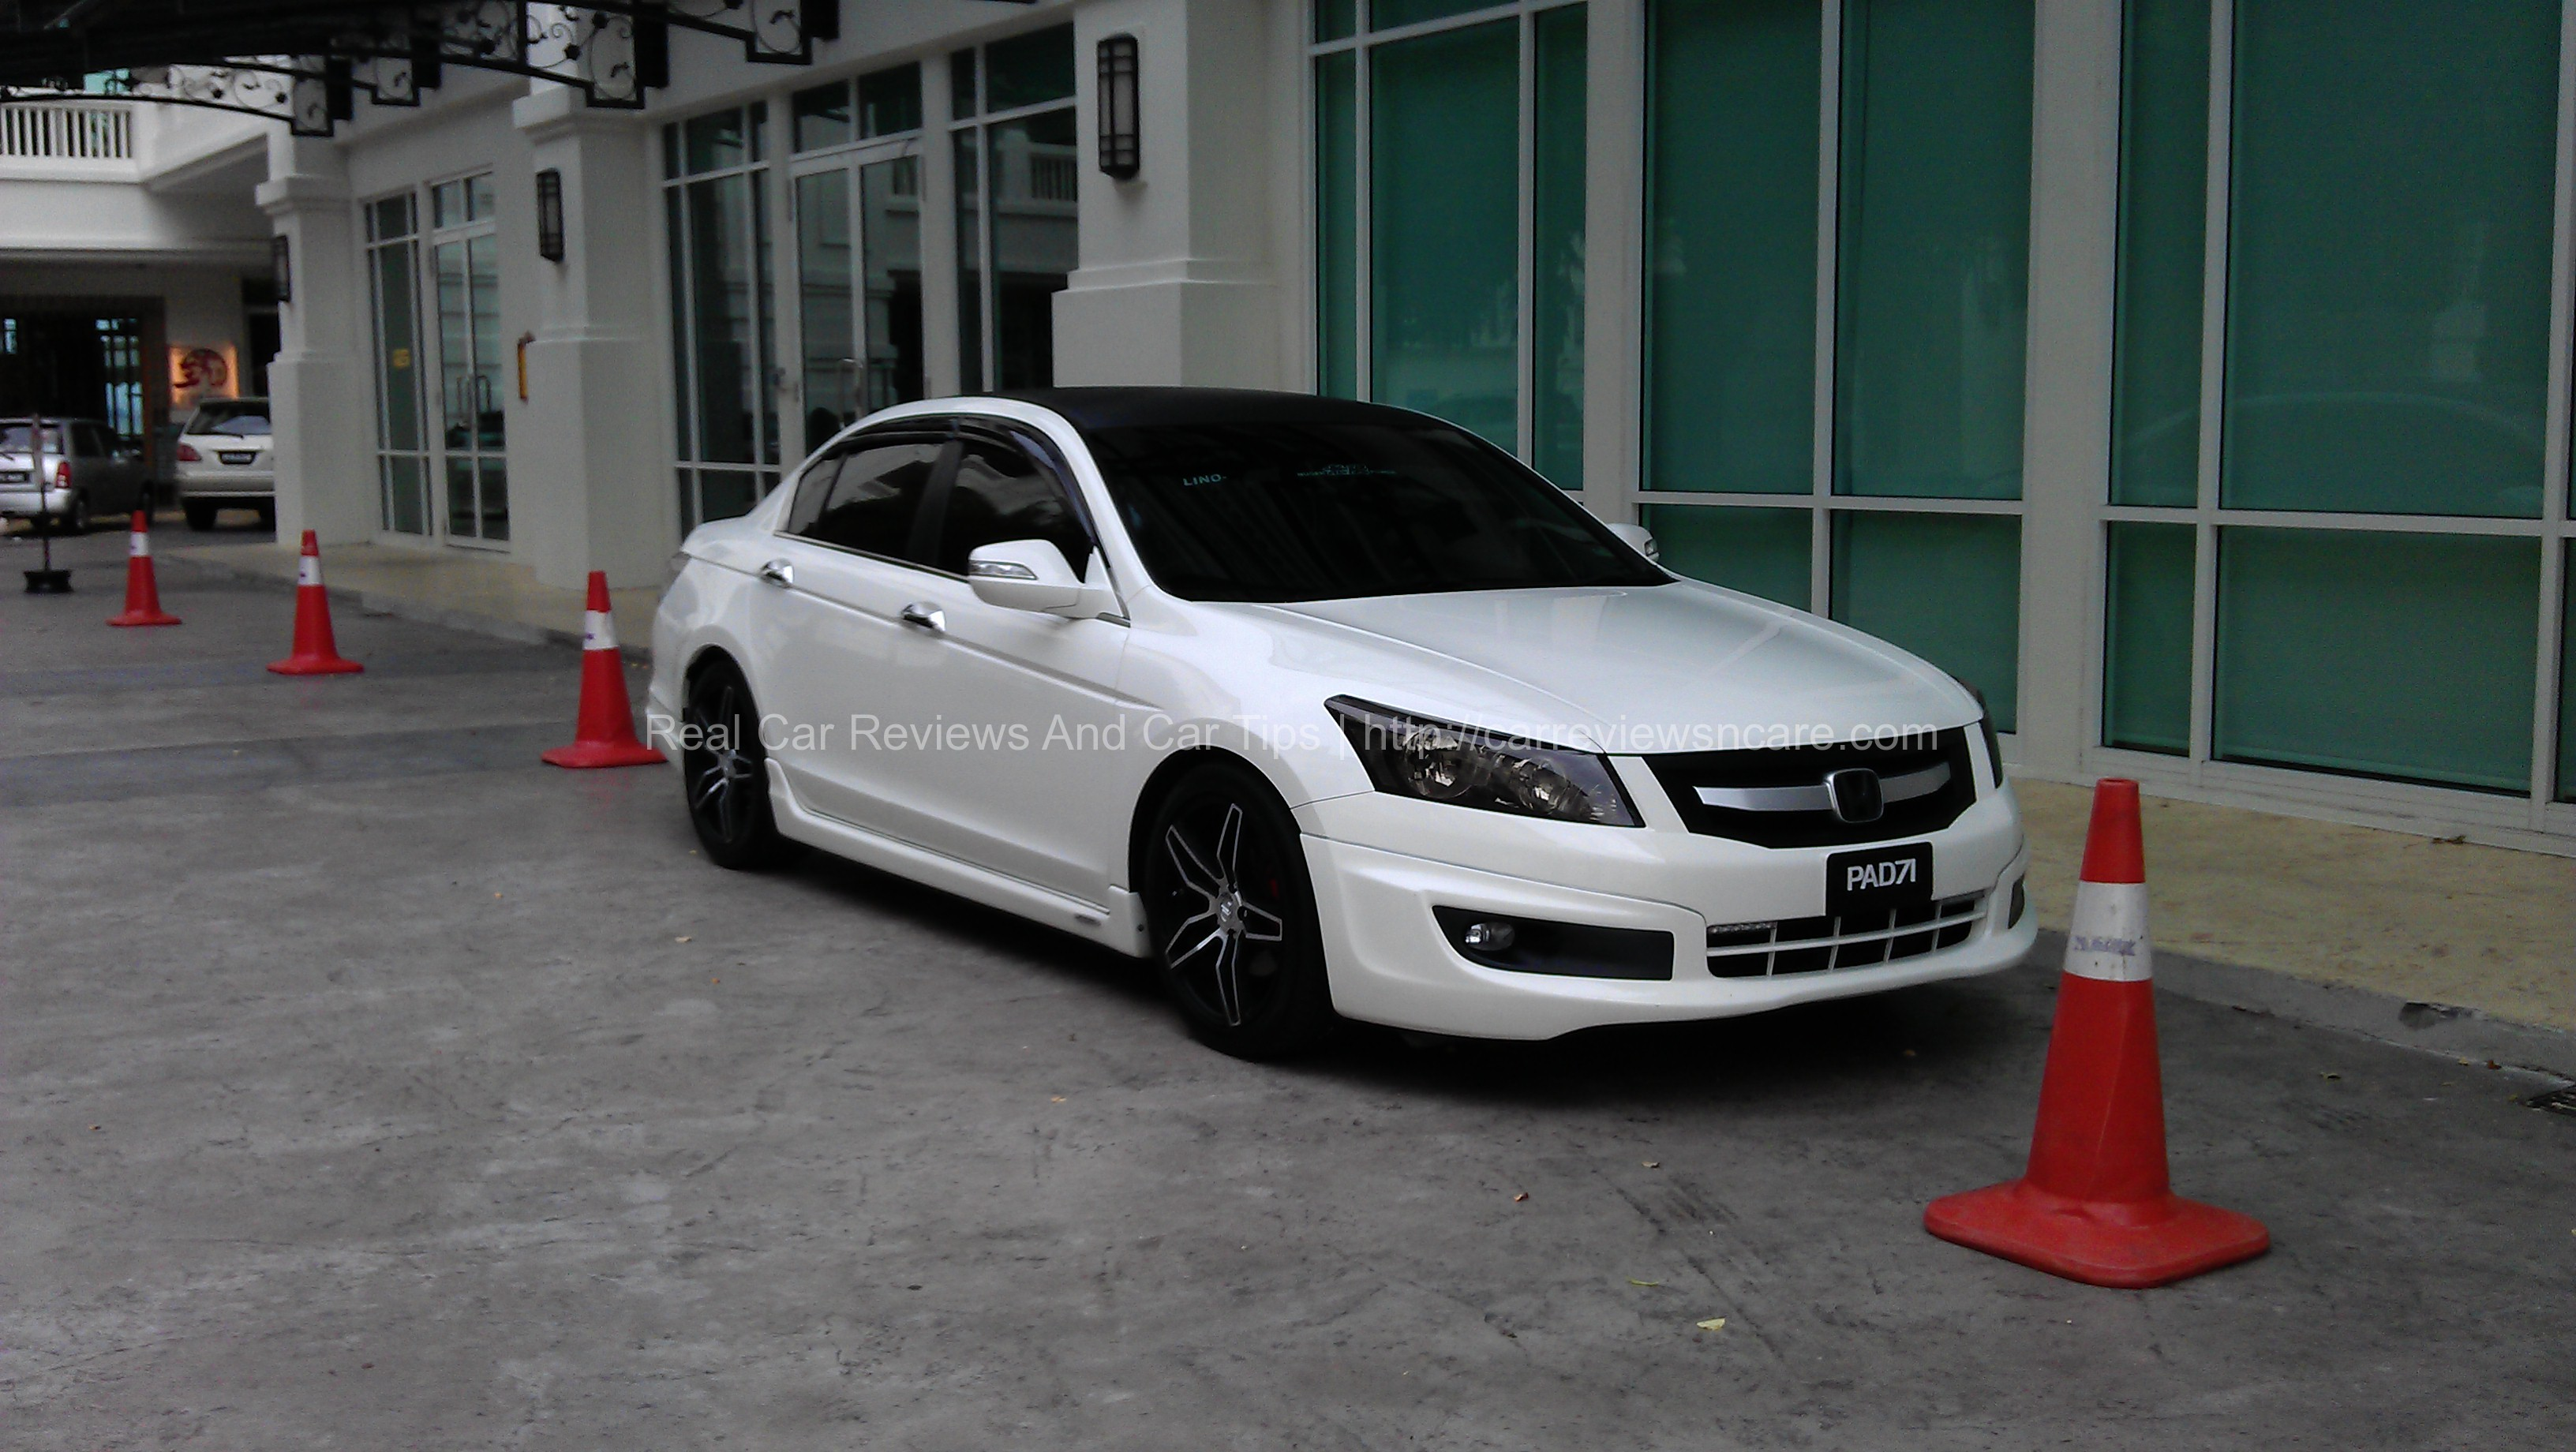 Honda Accord 2 0 Front View Modified